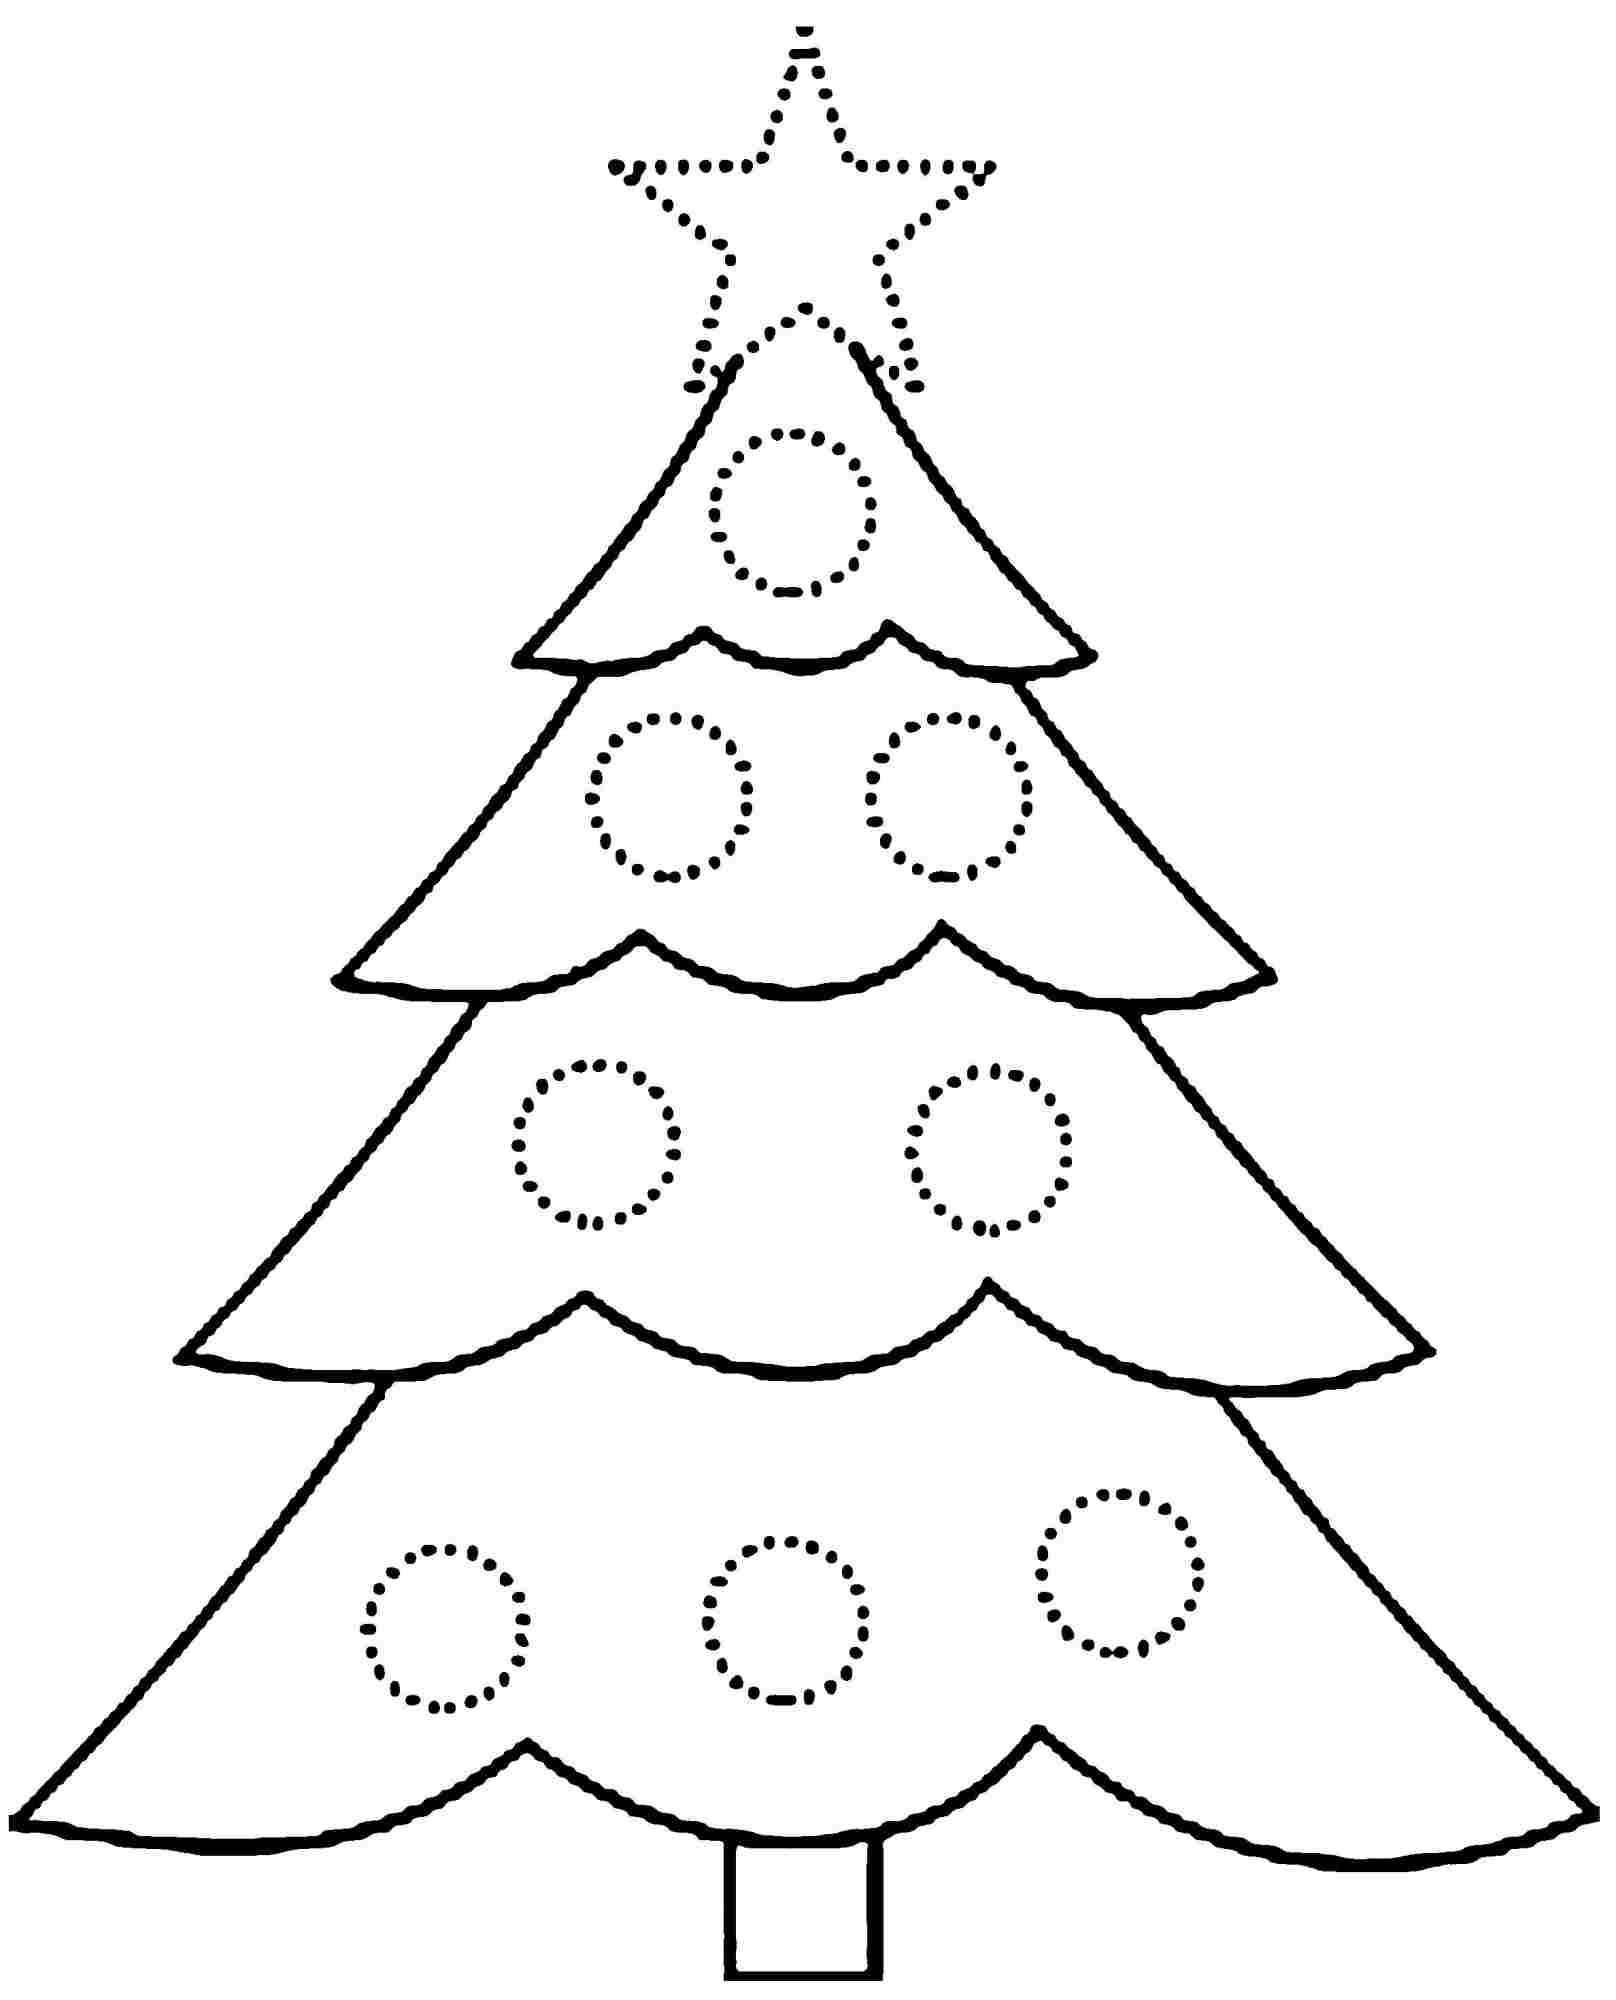 Christmas Coloring Pages for Preschoolers – coloring.rocks!